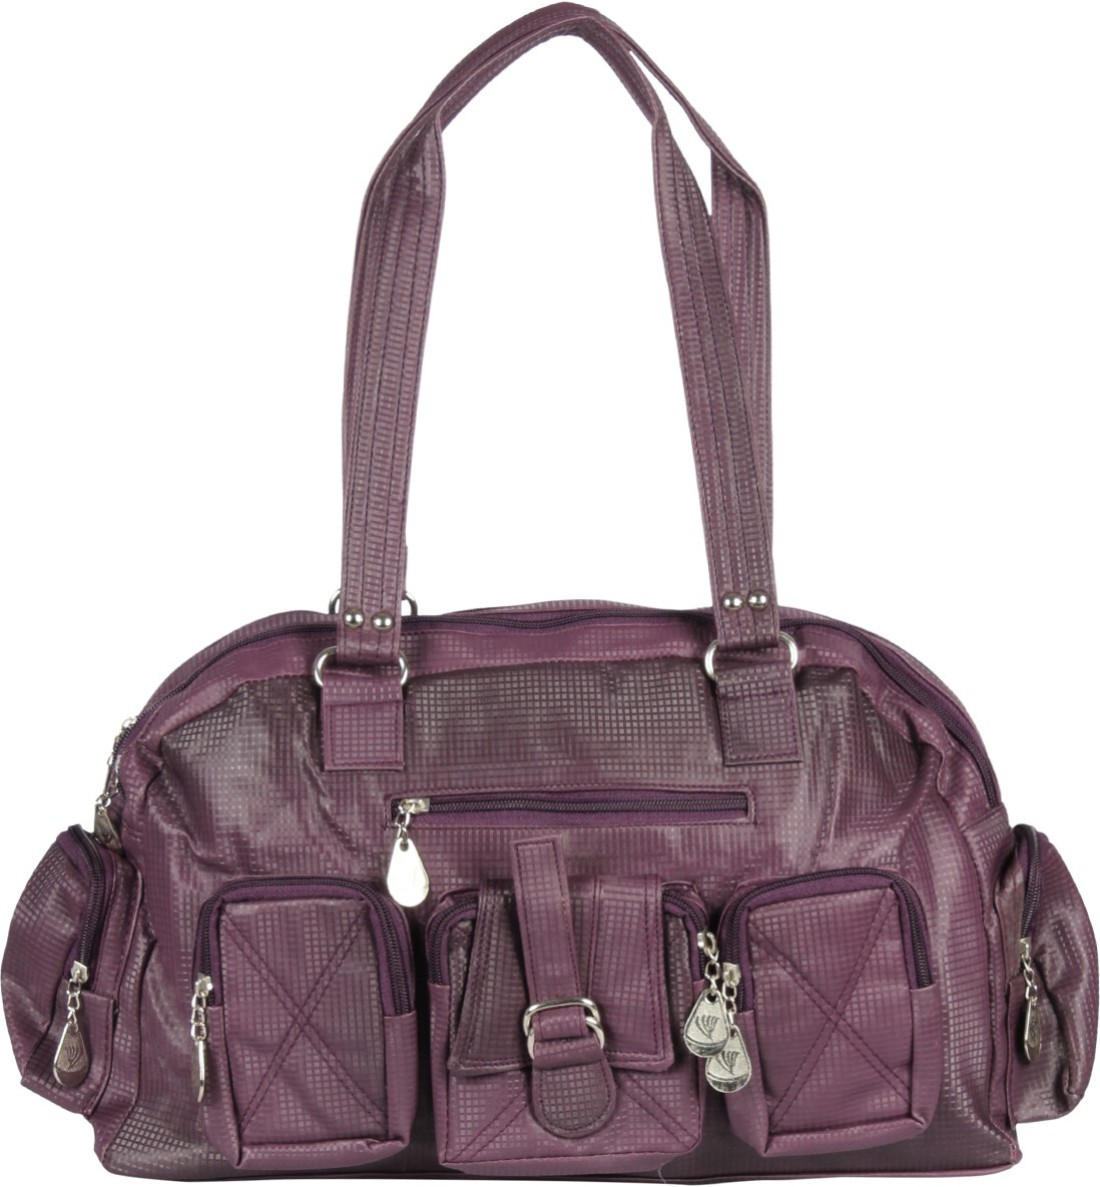 Gym Bag Flipkart: Angel Shoulder Bag Purple - Price In India